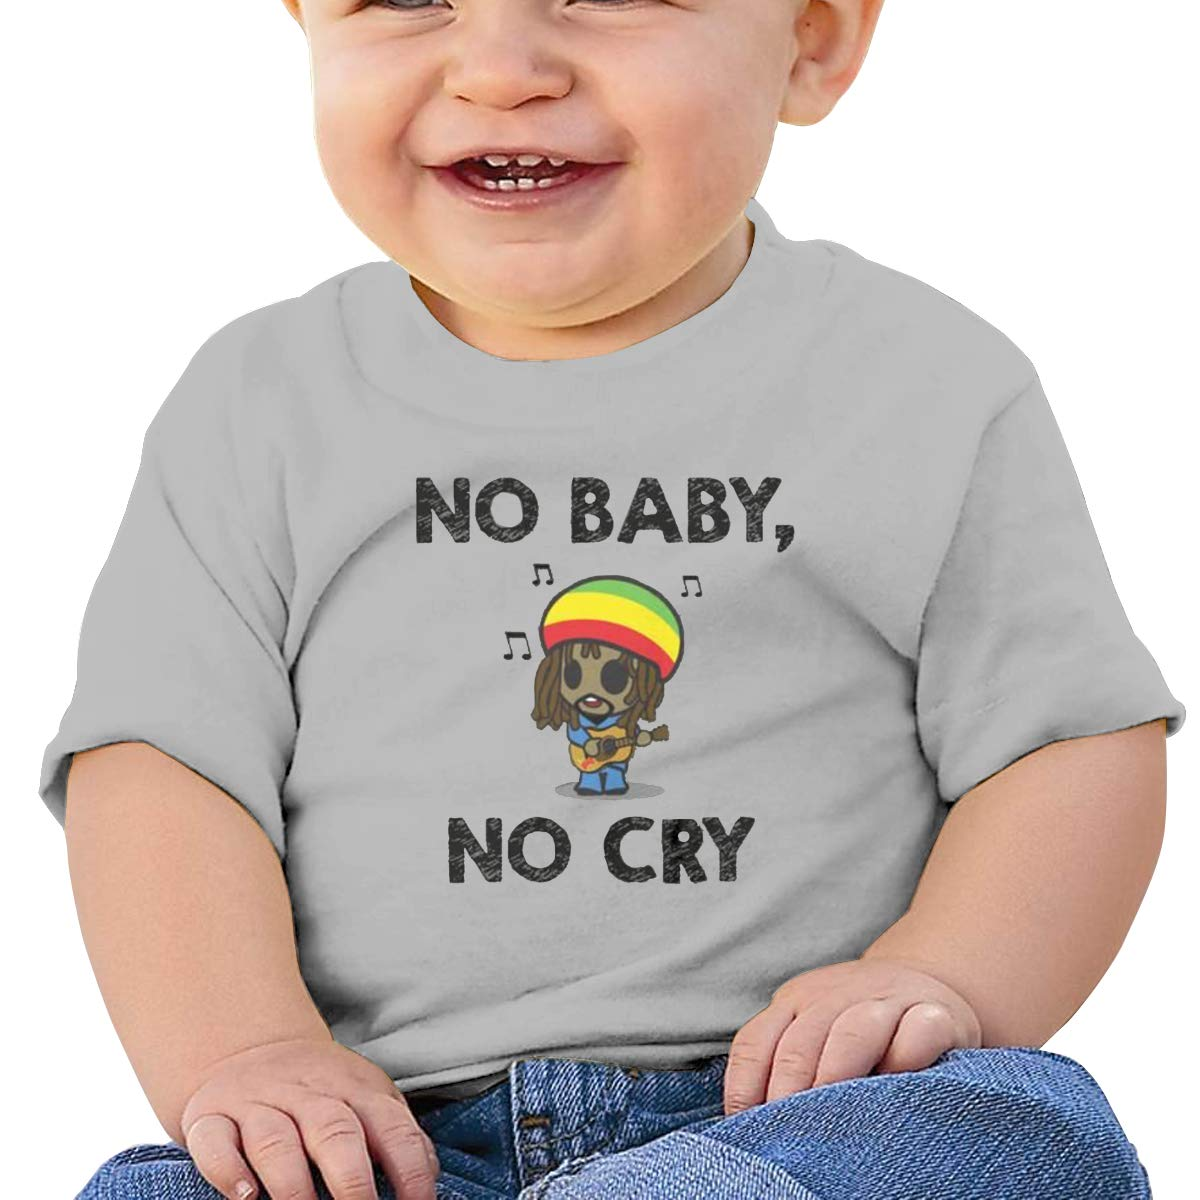 DONGLLY 6-24 Month Baby T-Shirt No Baby Bob Marley Leisure Home Gray No Cry